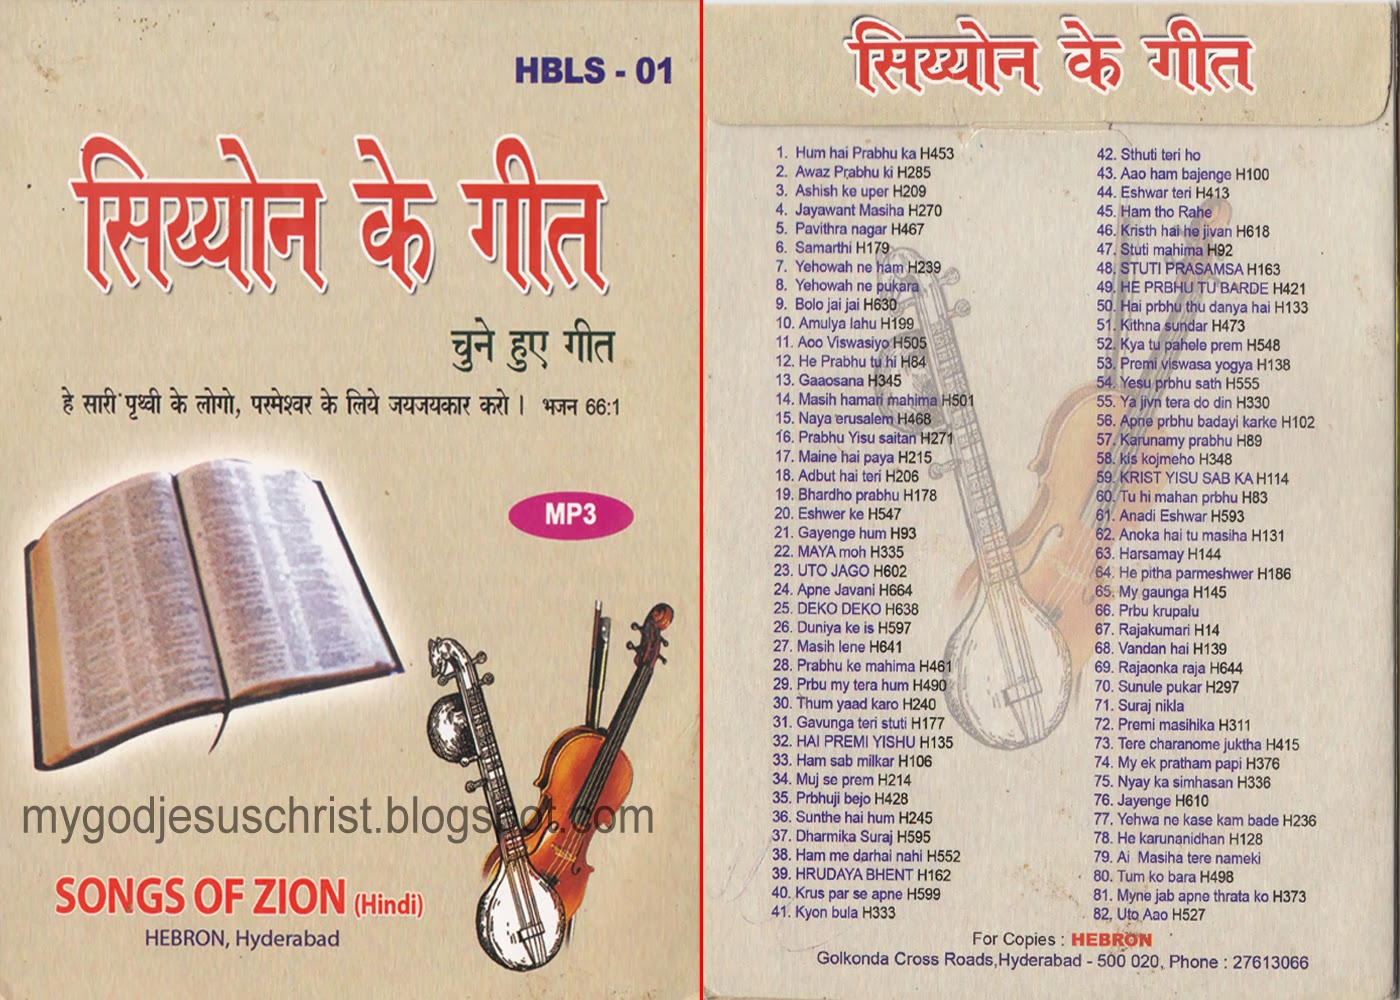 songs of zion hindi christian songs free download christian